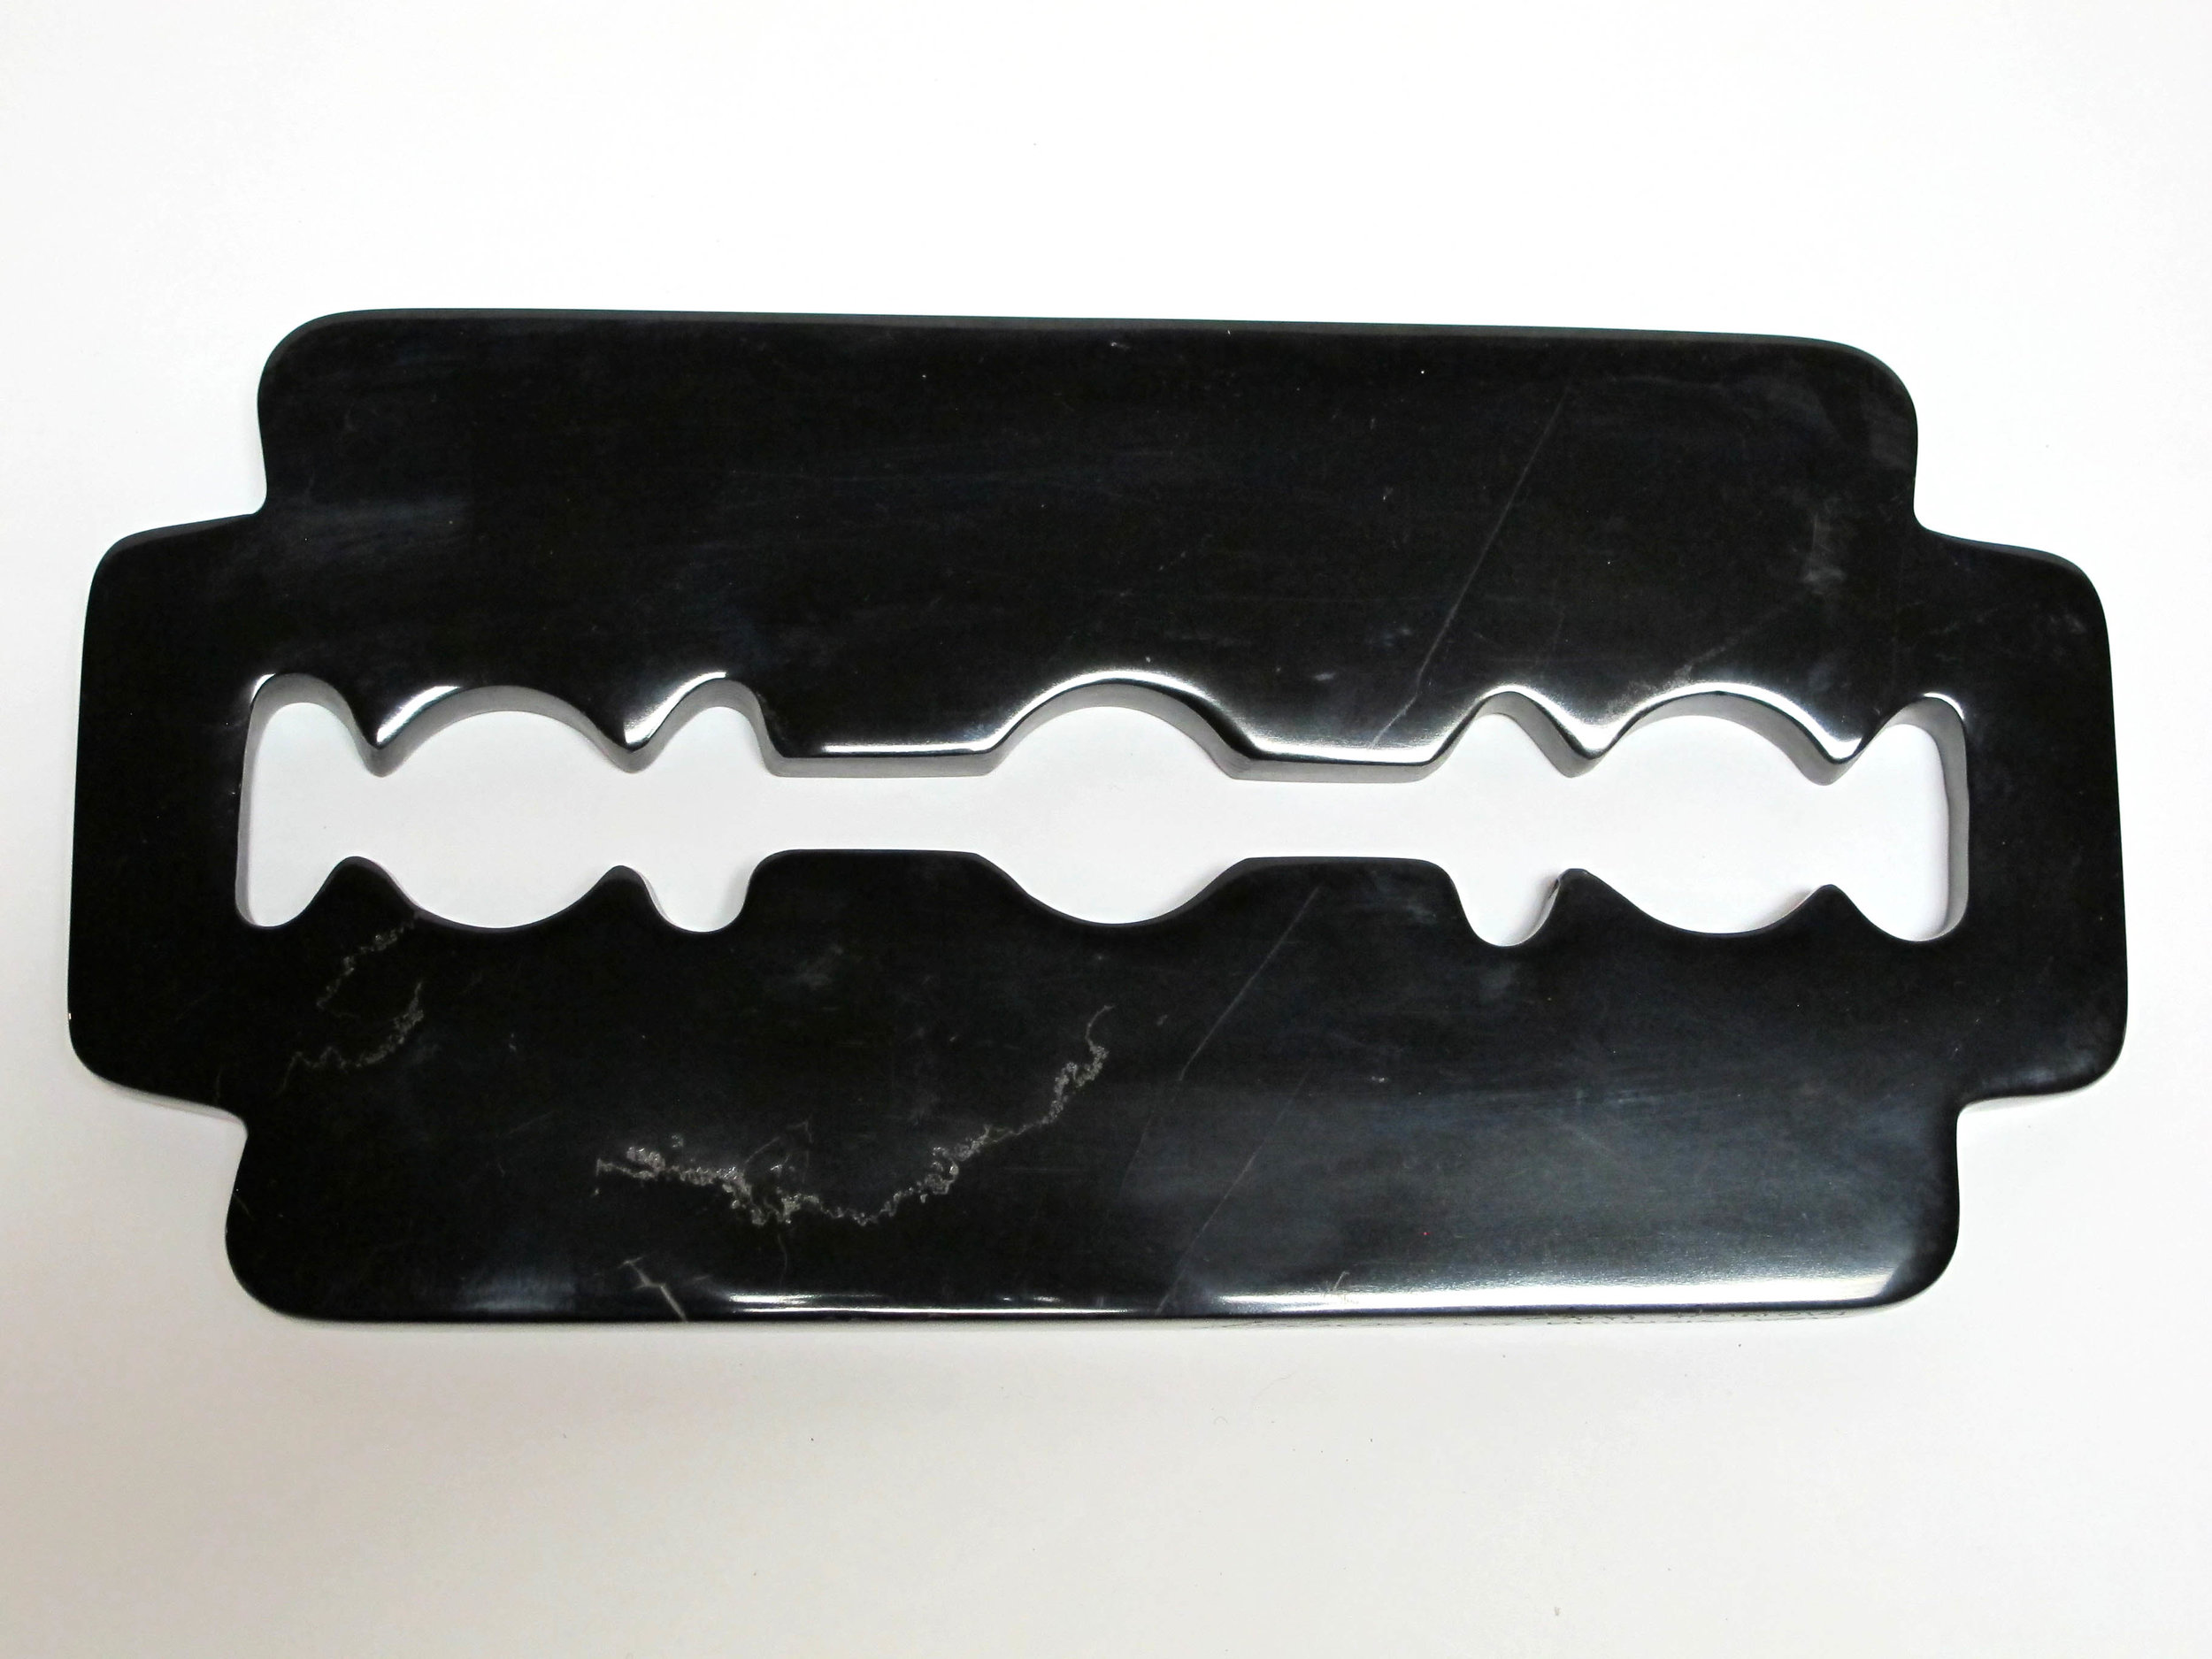 KL_The-Razor Blade_Black-Marble_13x8.jpg